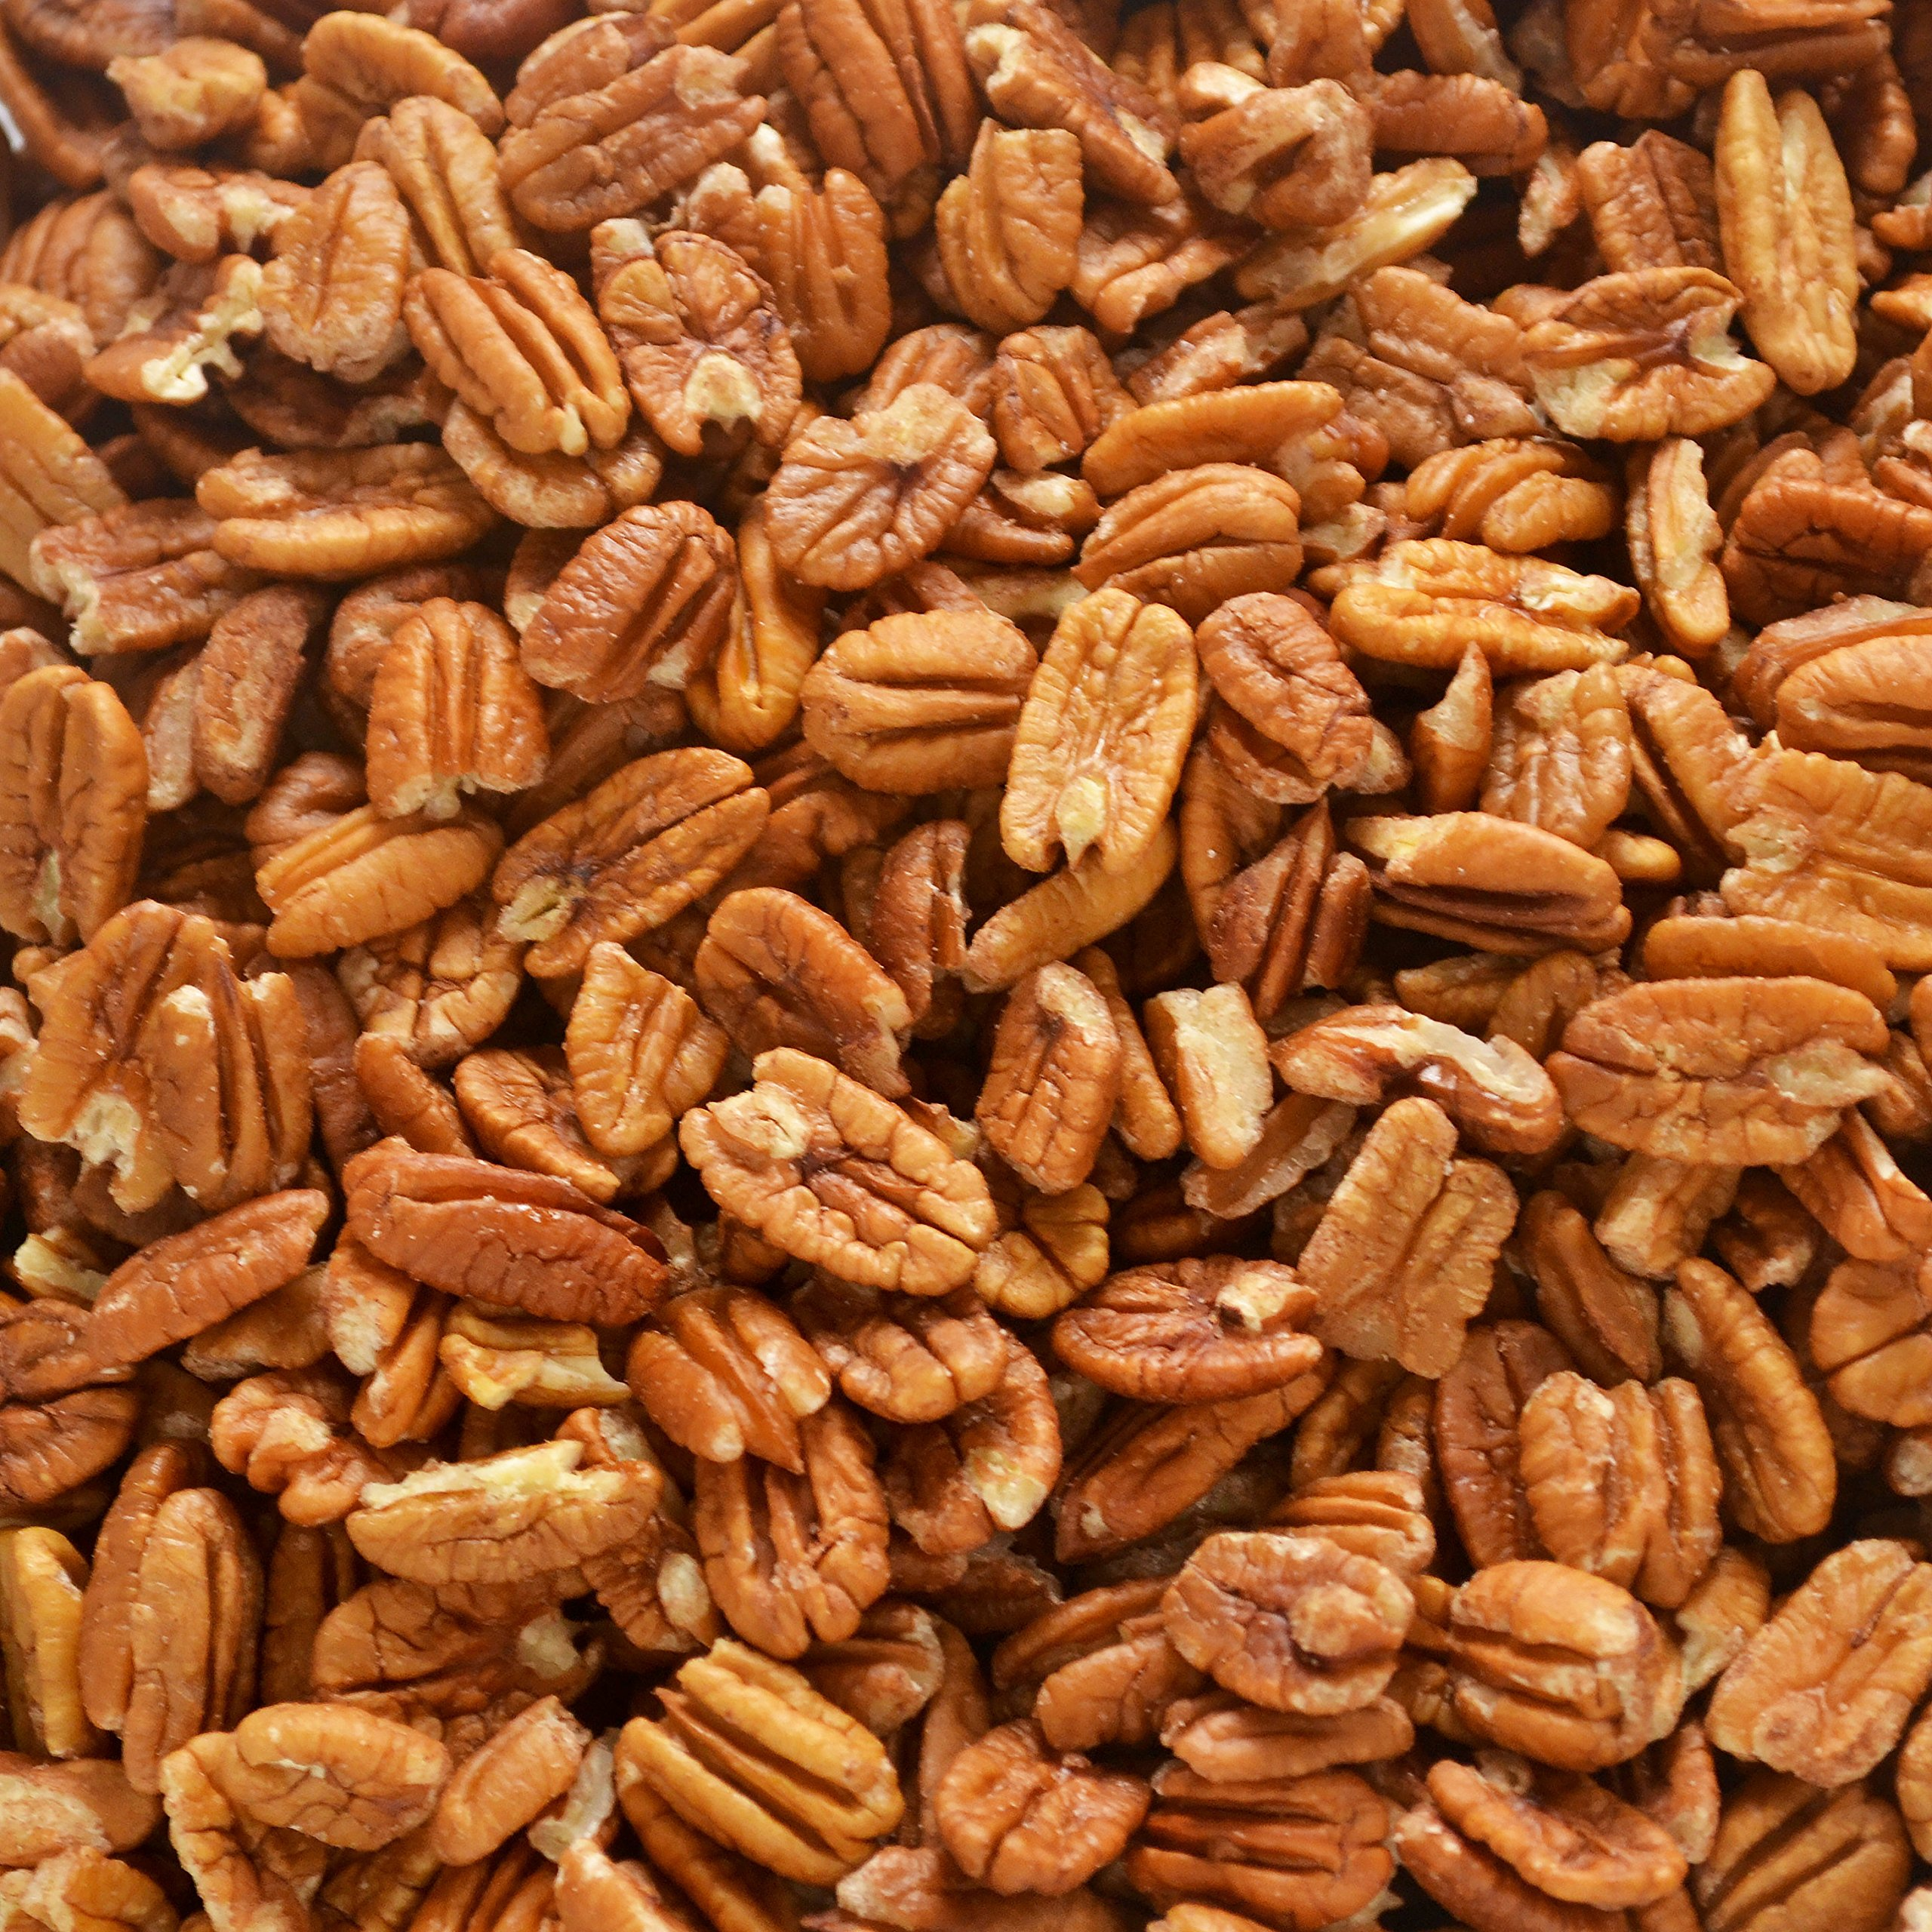 Fresh Shelled Texas Native Pecan Halves - Certified Pesticide-free and Wild-harvested 2 Lb. by PecanShop.com